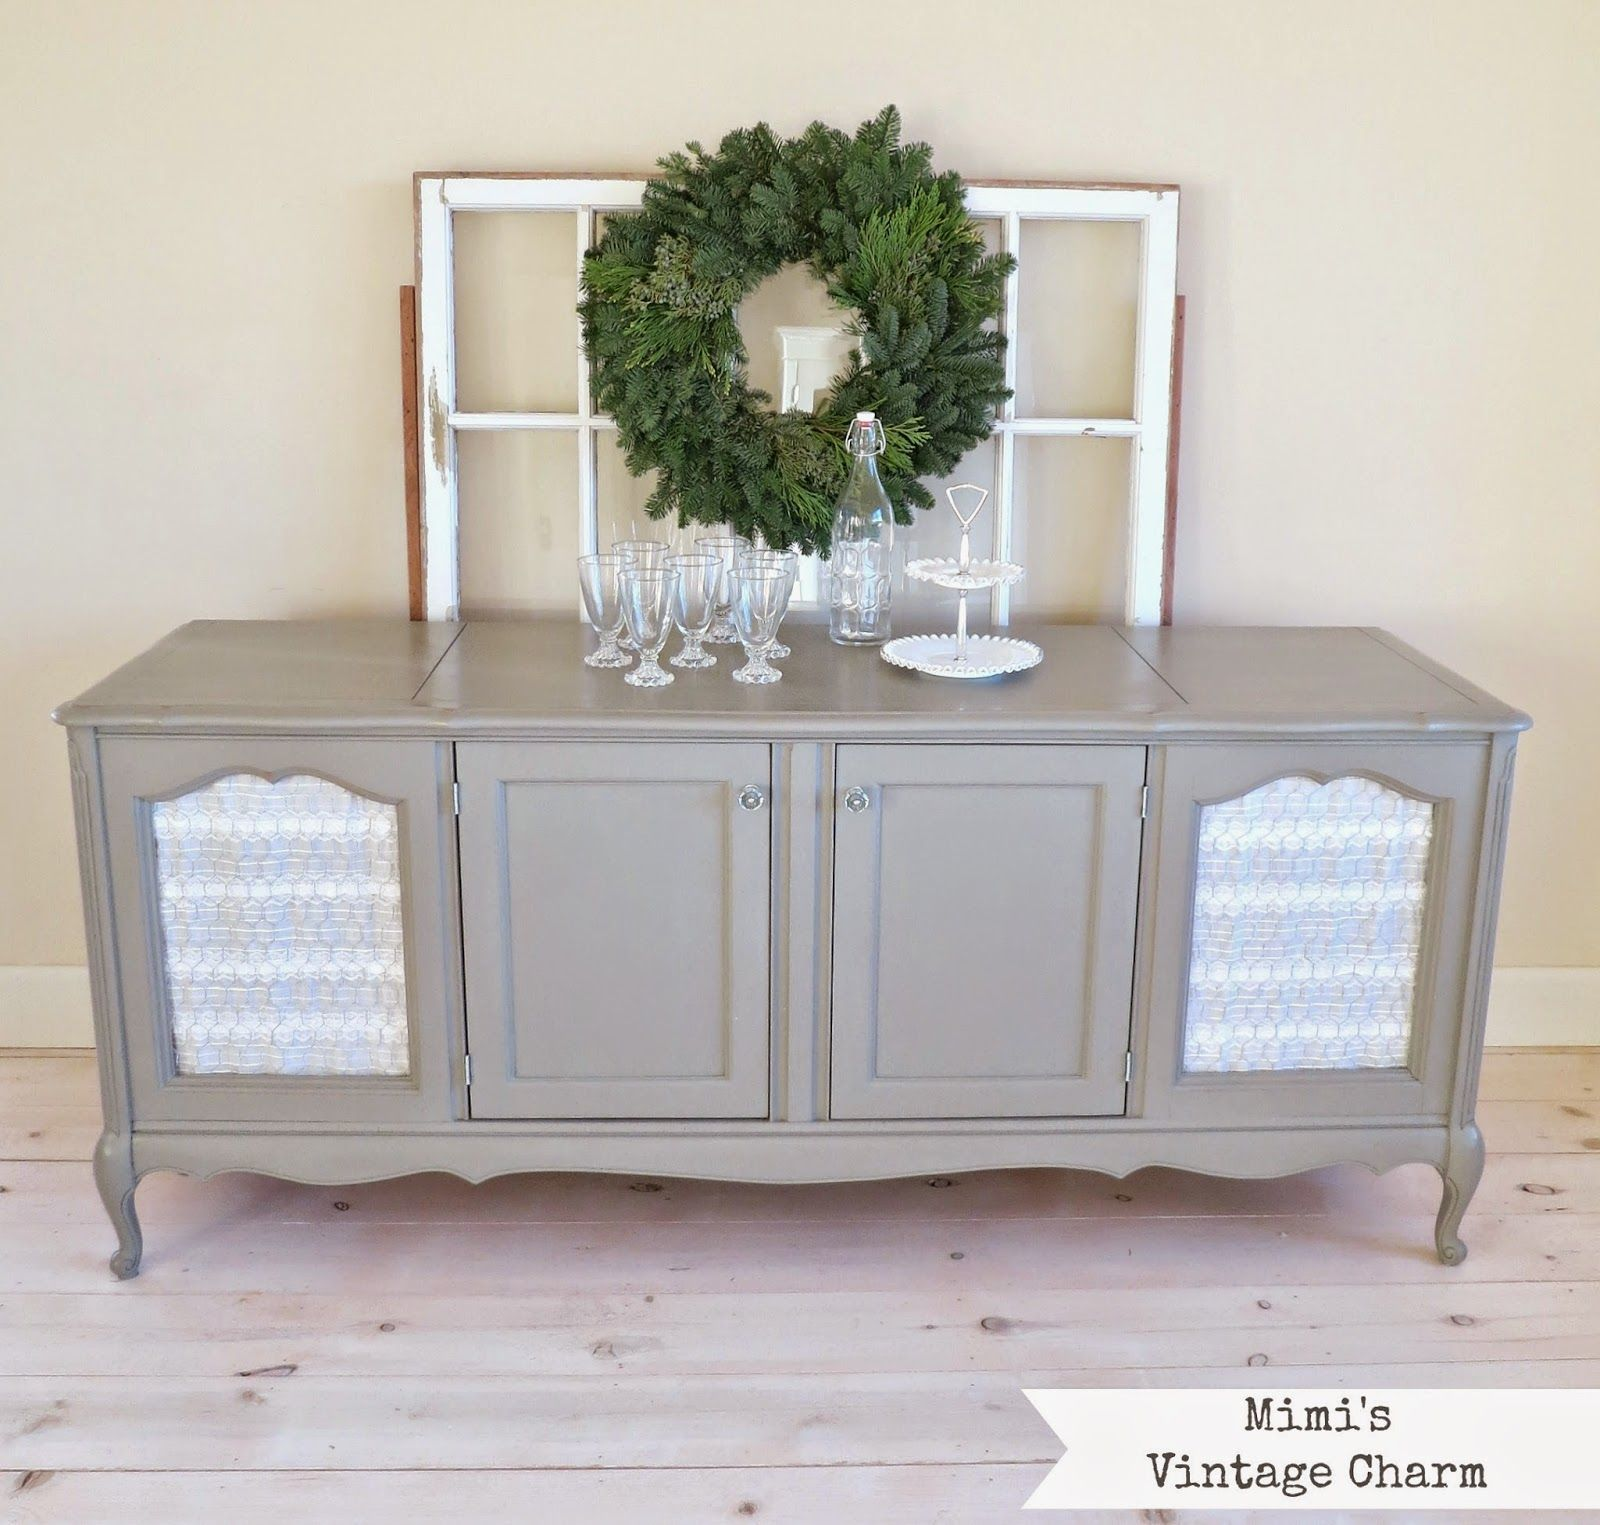 Mimi's Vintage Charm: French Linen Cabinet With Chicken